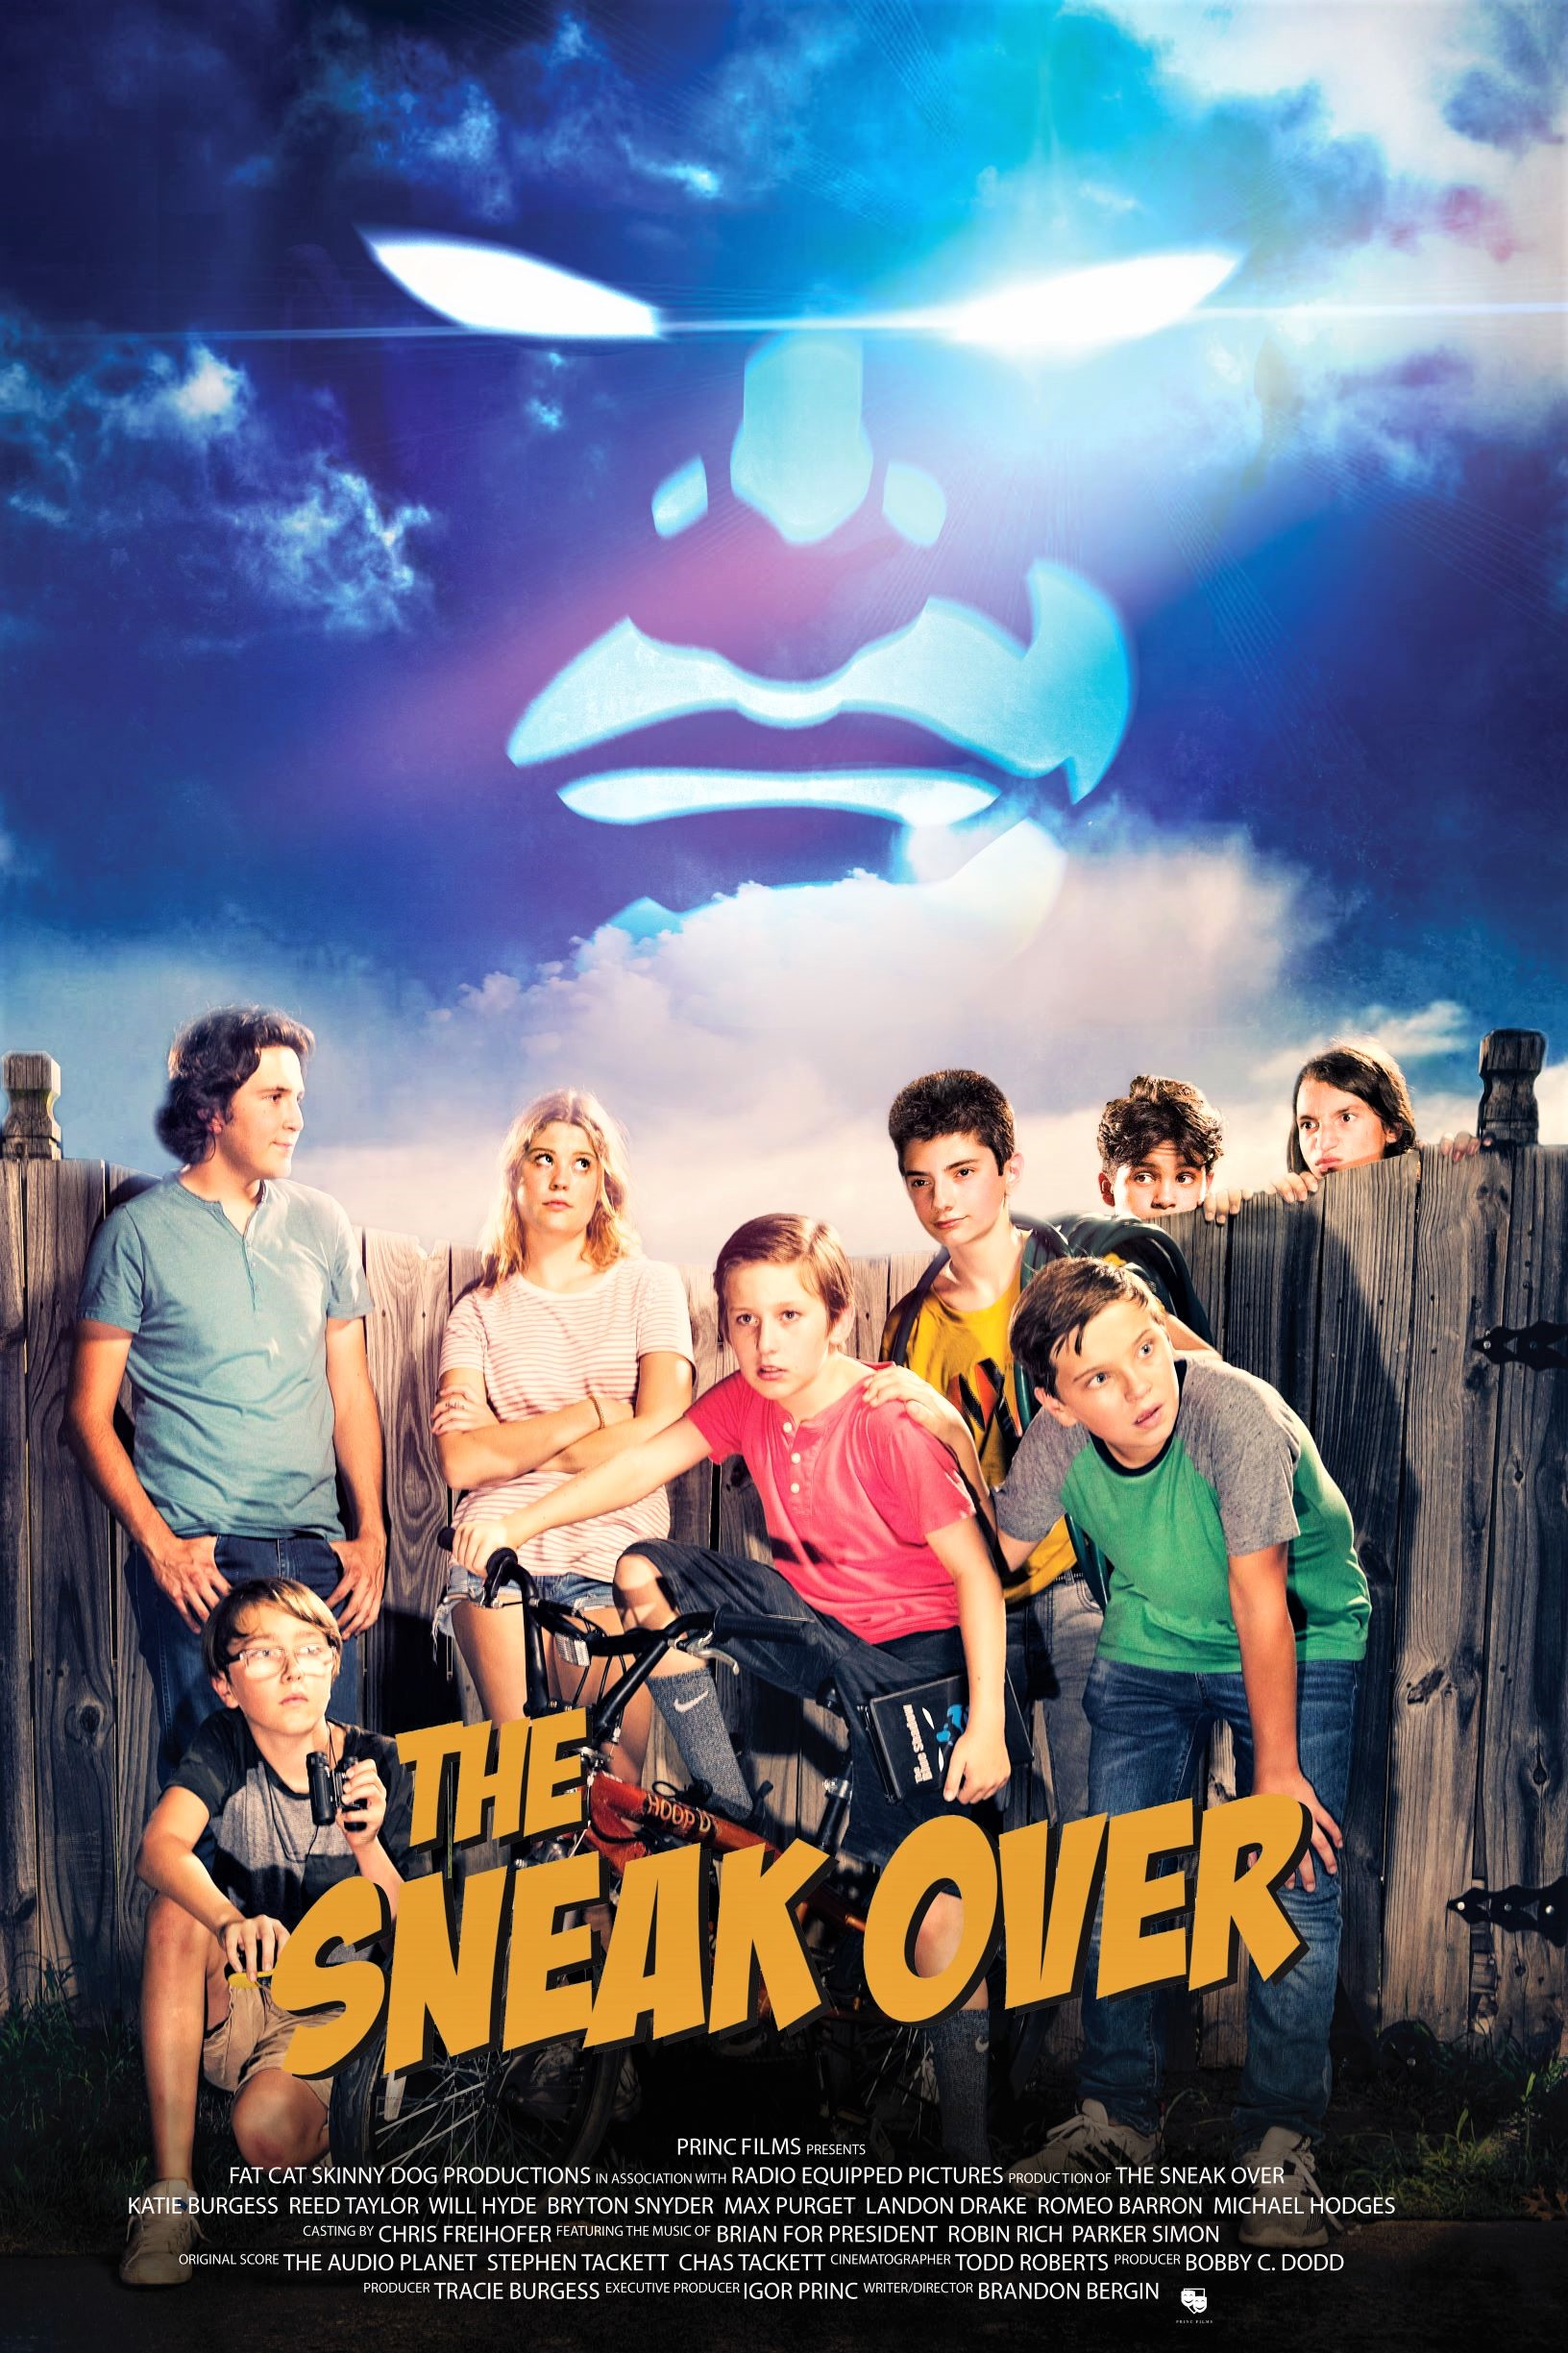 The Sneak Over (2020) WebRip 720p Dual Audio [Hindi (Voice Over) Dubbed + English] [Full Movie]